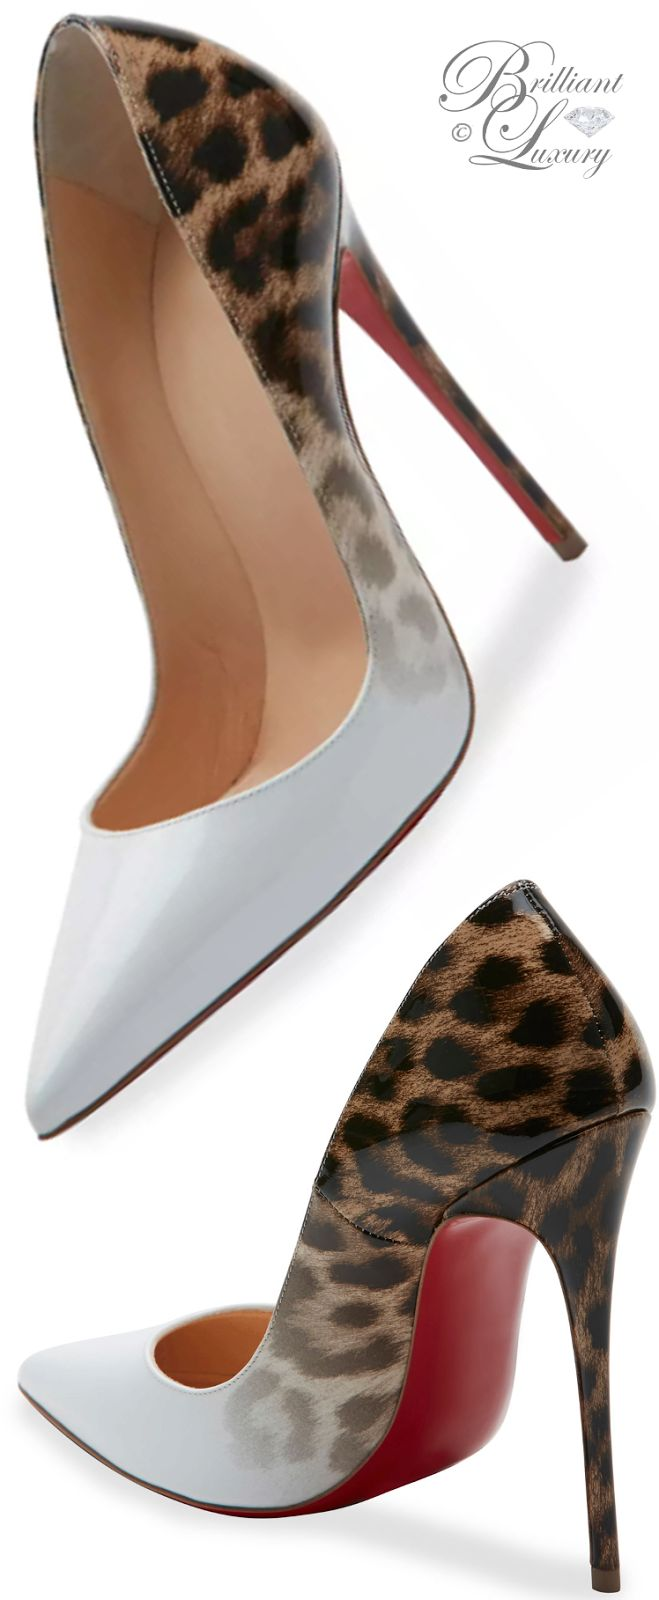 Brilliant Luxury * Christian Louboutin So Kate Degrade 120mm Red Sole Pump